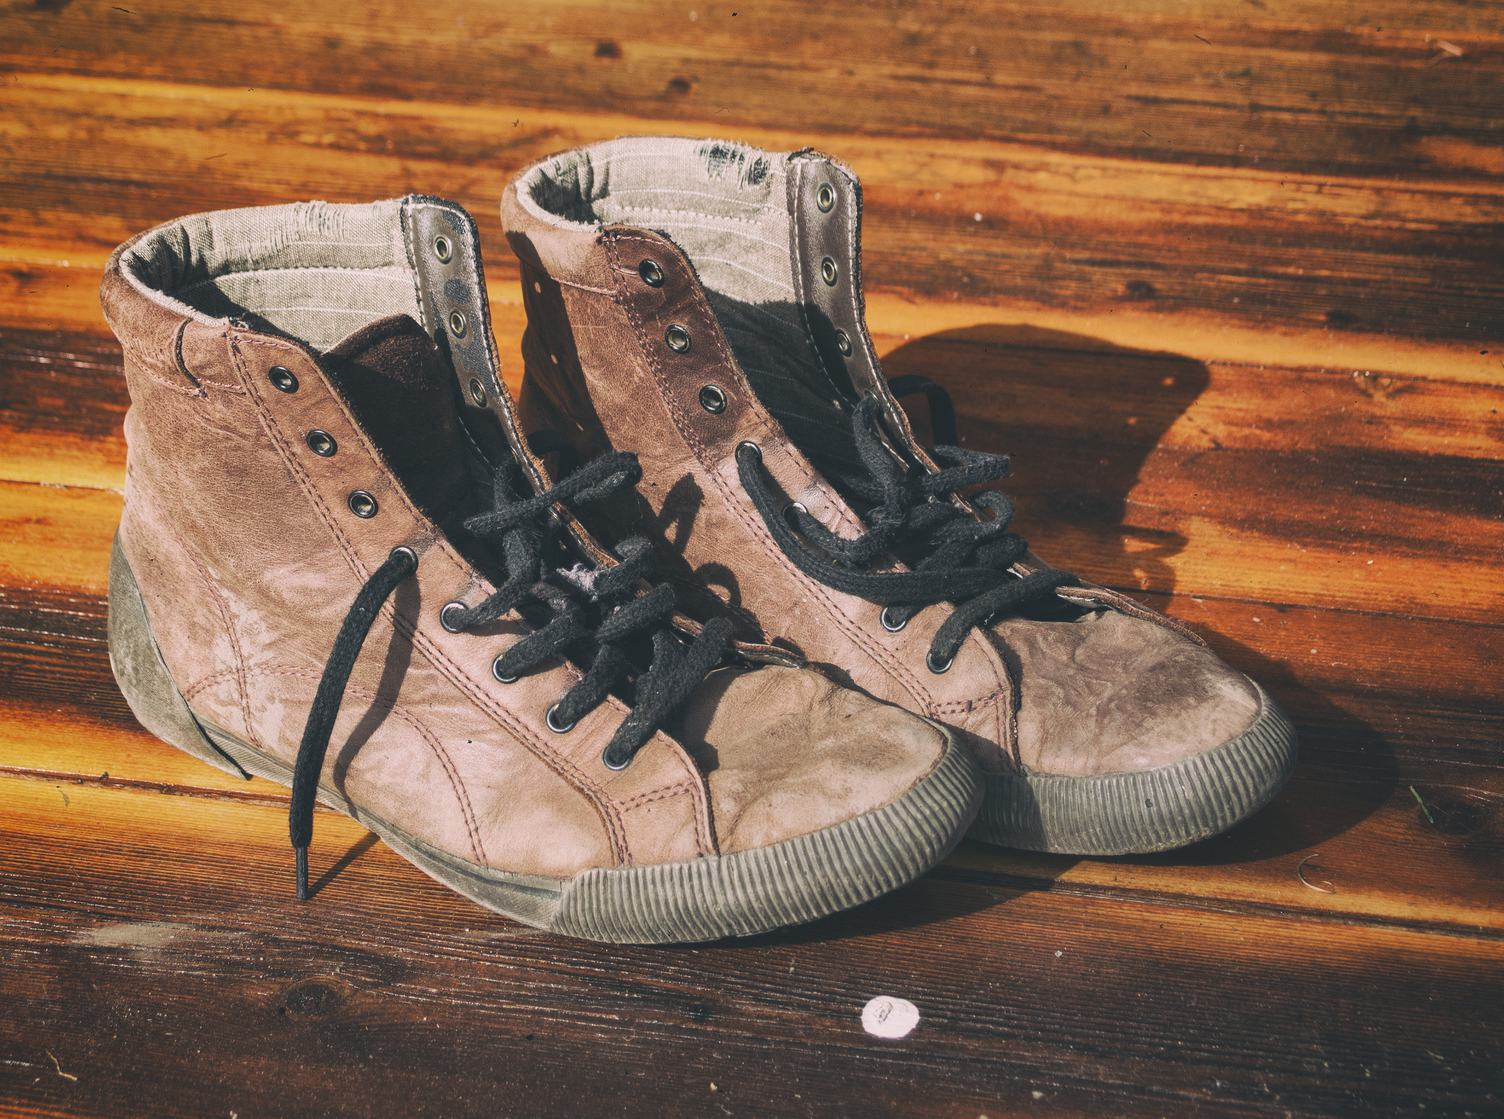 Pair of Old Dirty Brown Leather Shoes